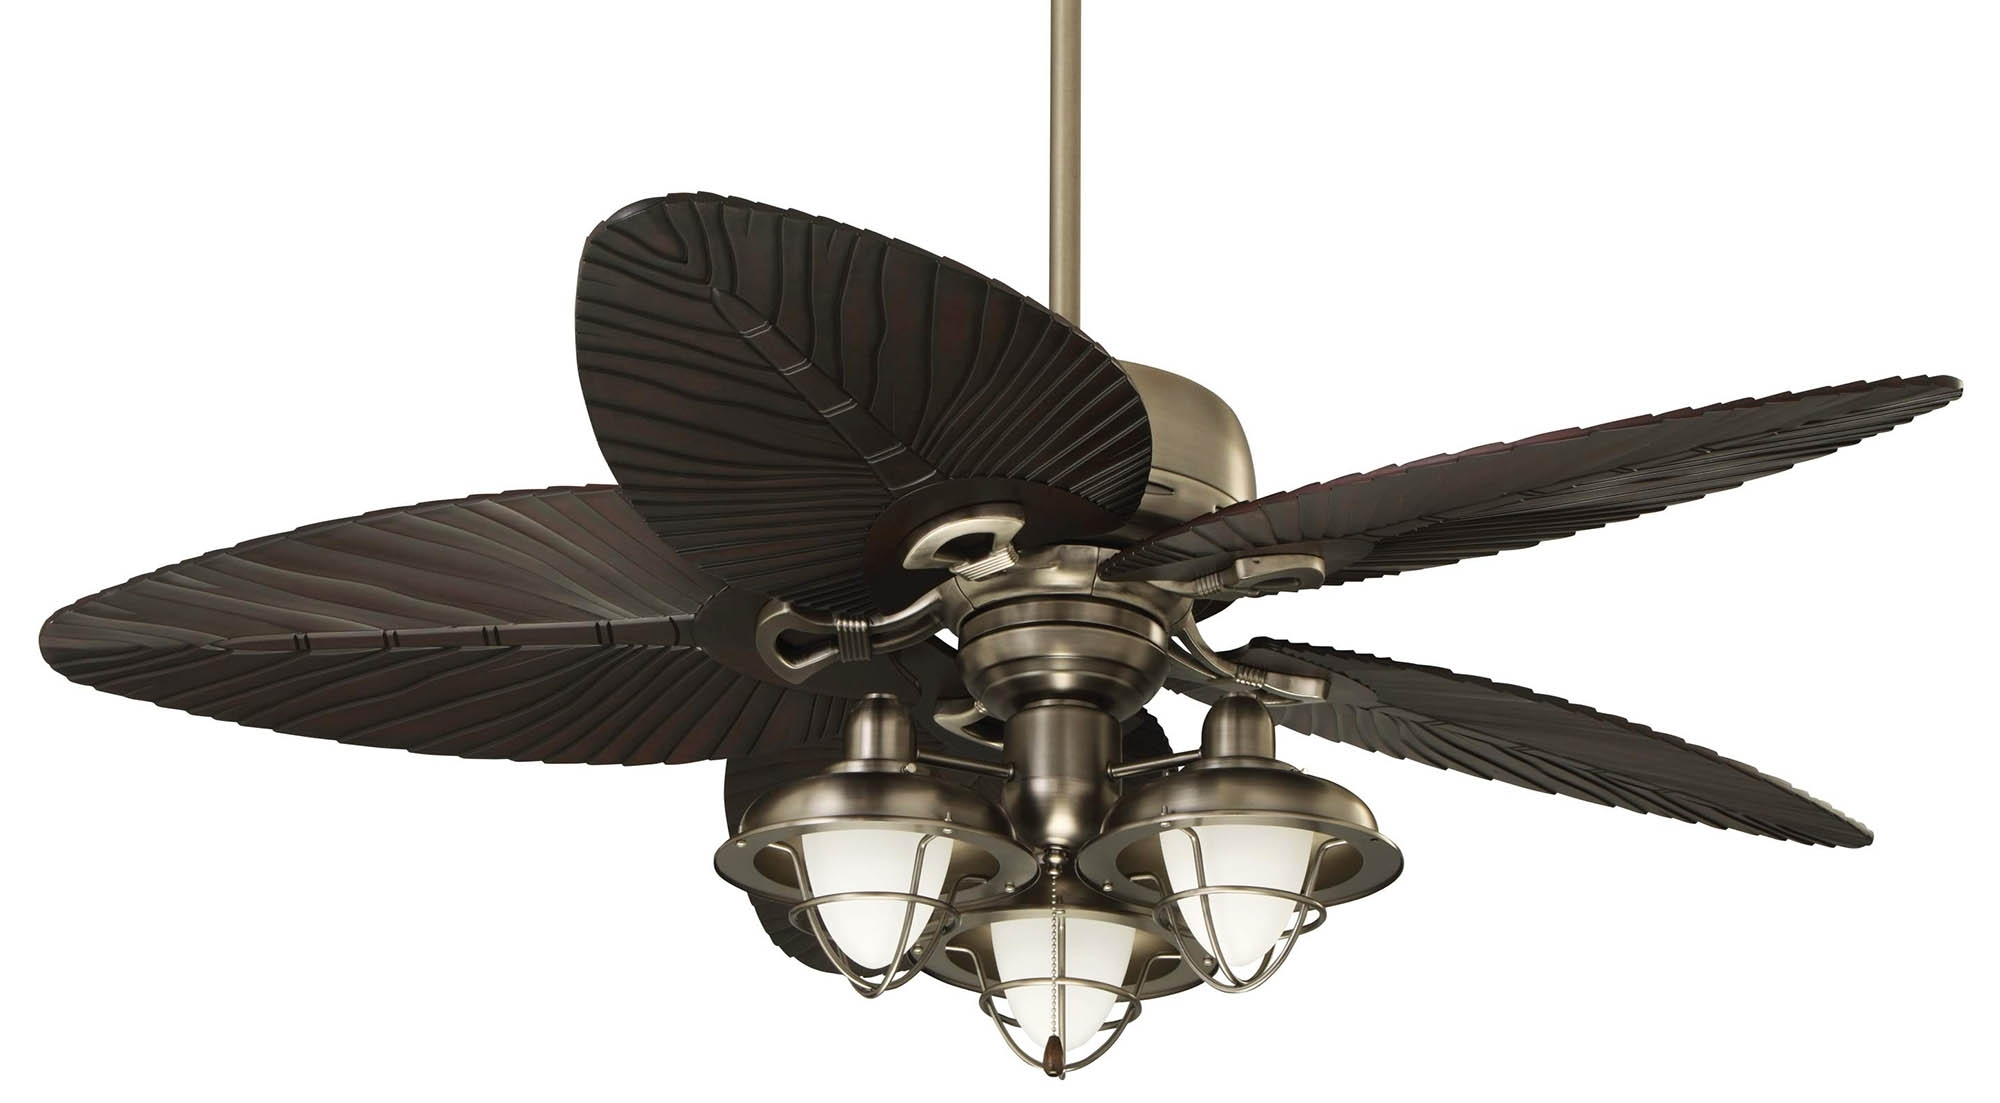 Fabulous Lowes Ceiling Fans Clearance Ceiling Lighting Tropical Intended For Most Recent Outdoor Ceiling Fans With Lights At Lowes (View 2 of 20)